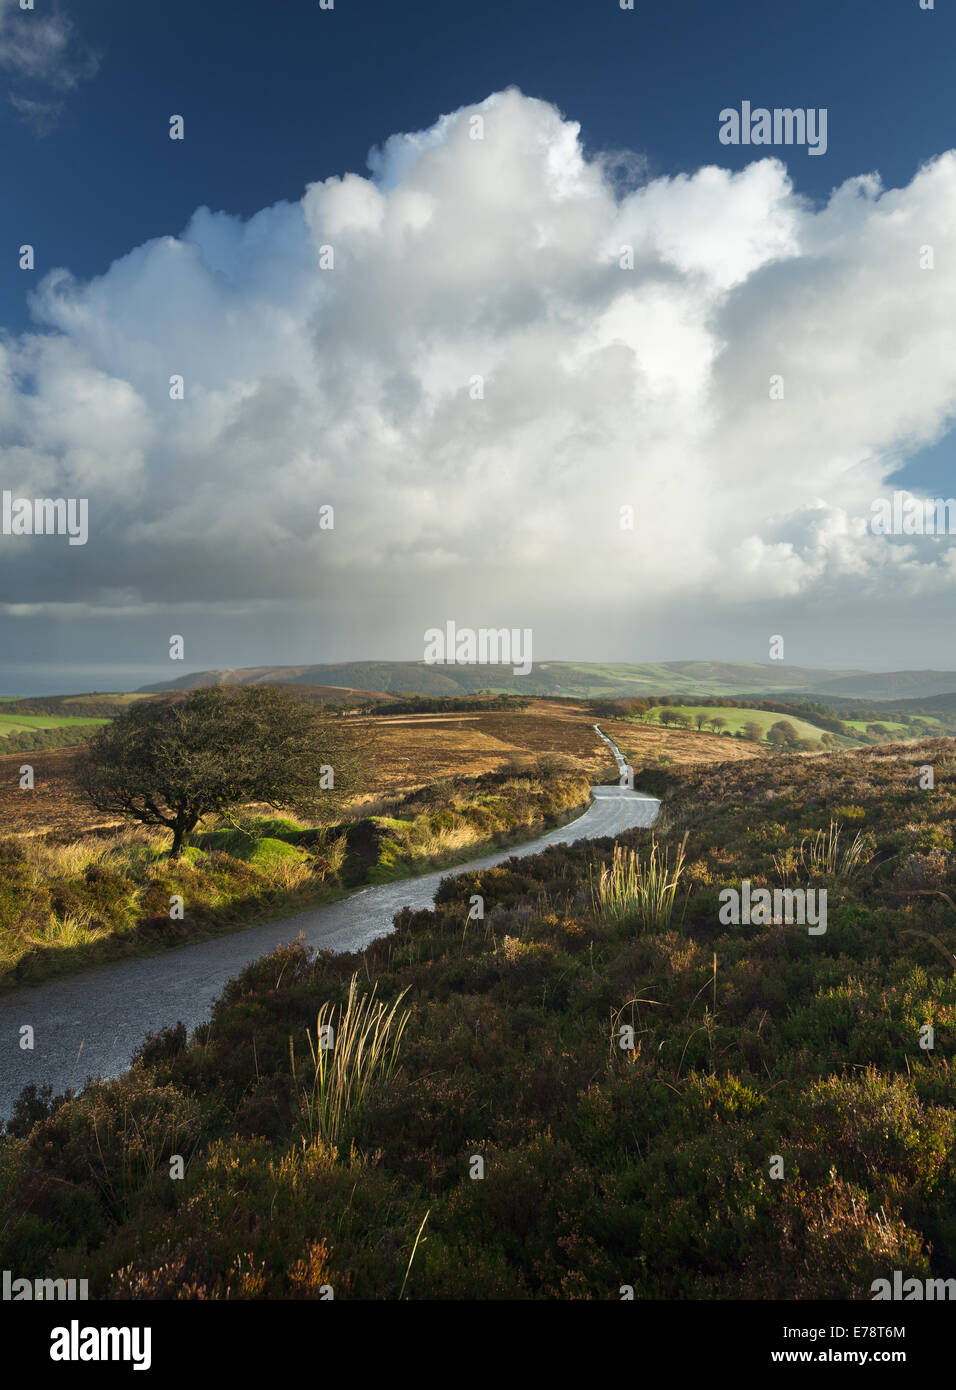 the road to Stoke Pero, Dunkerry Beacon, Exmoor National Park, Somerset, England, UK - Stock Image